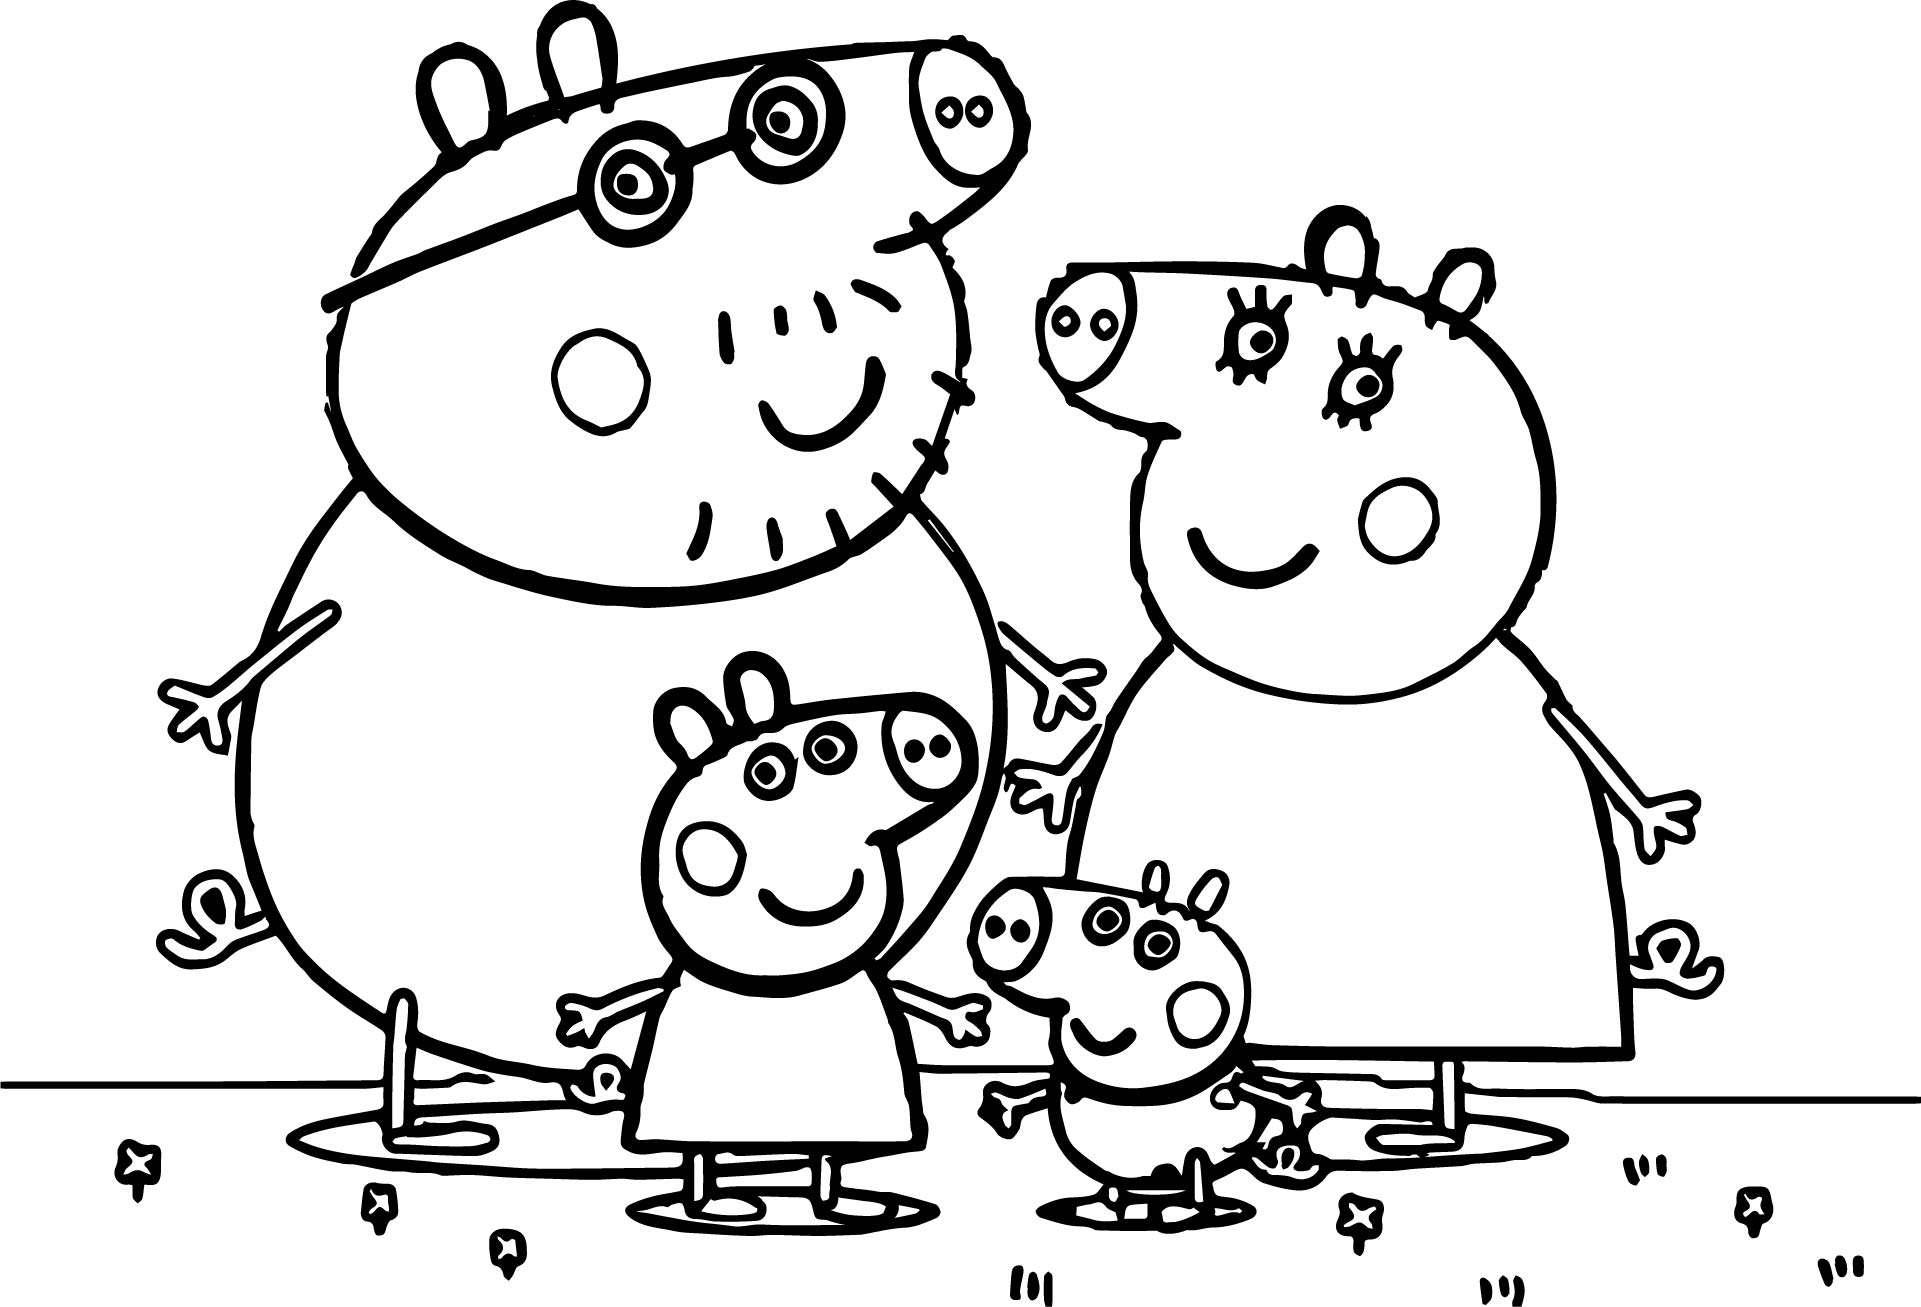 Peppa pig family coloring pages sketch coloring page for Peppa pig drawing templates